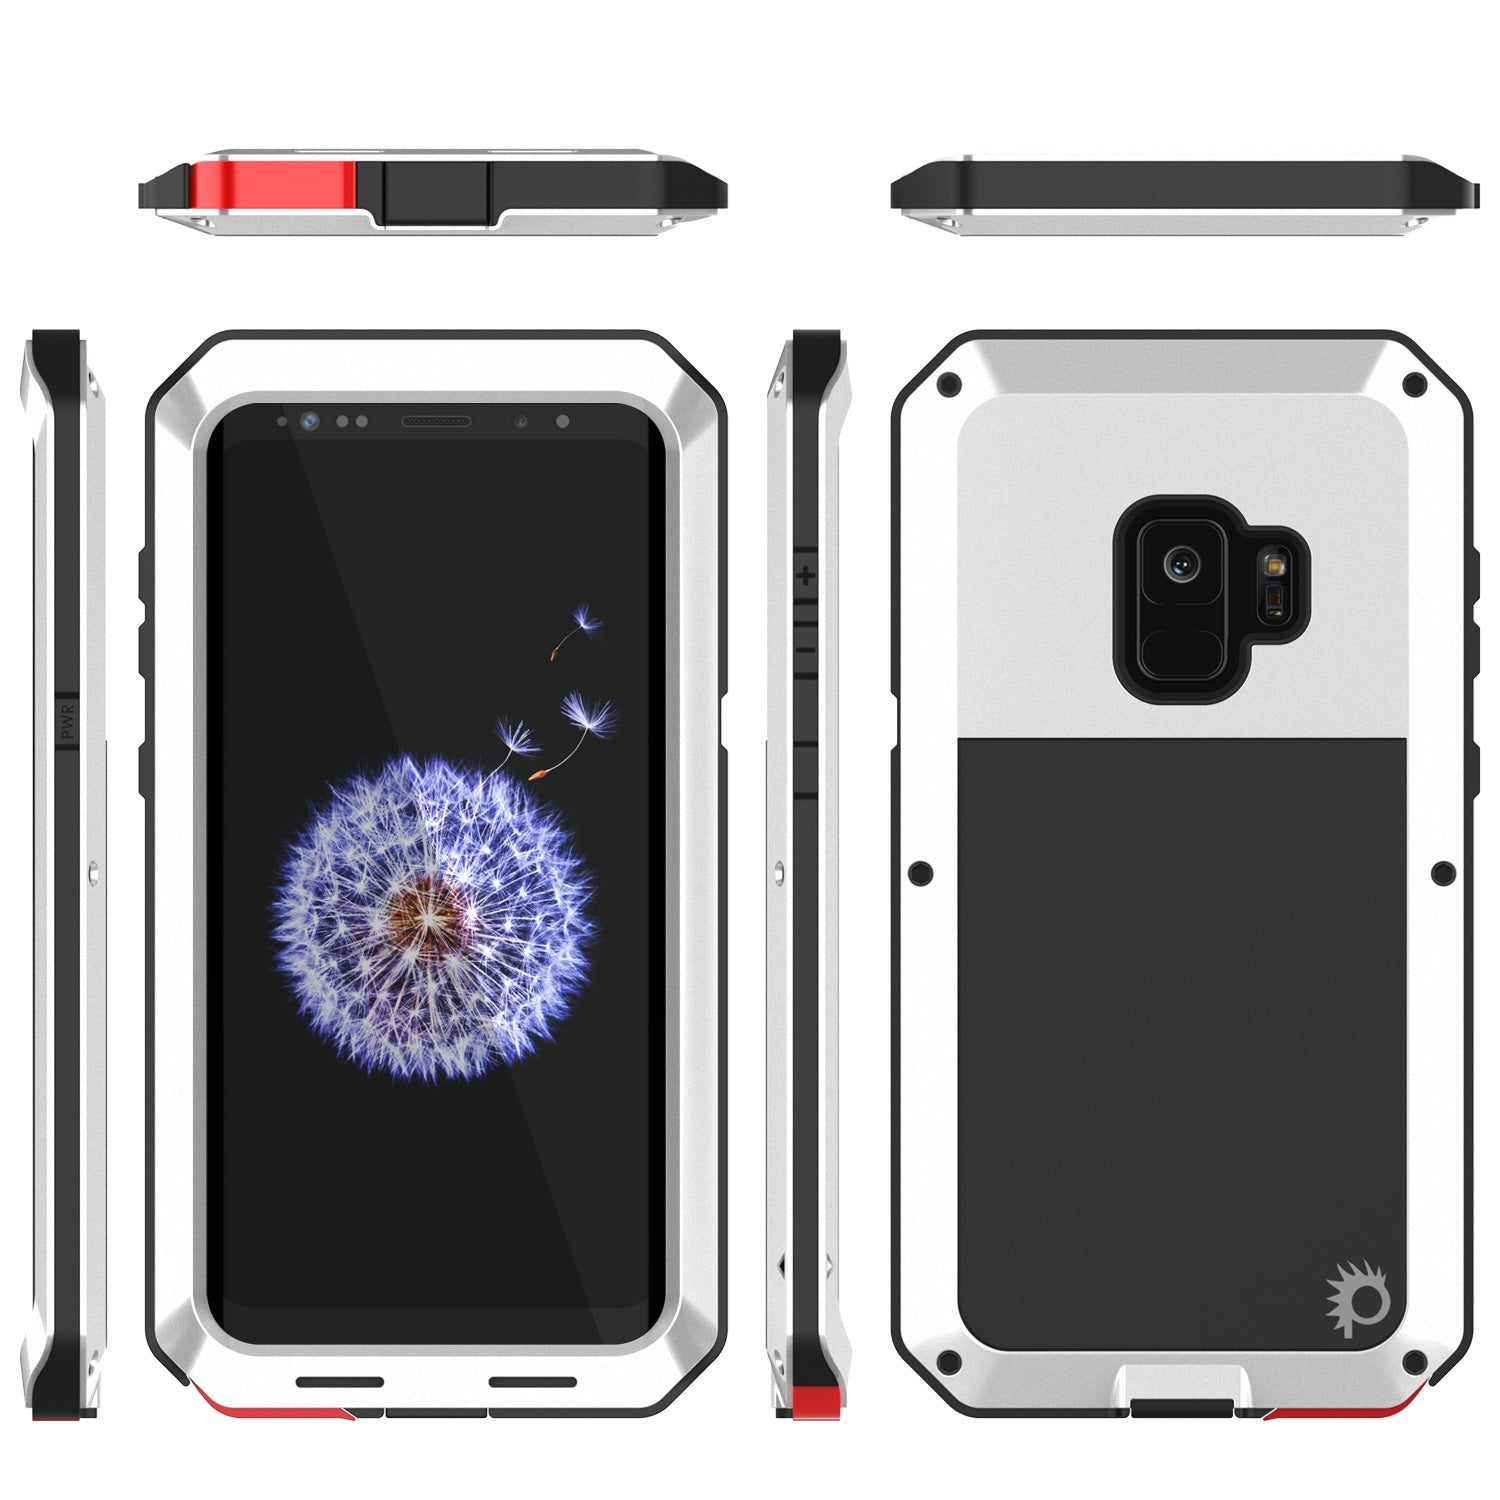 Galaxy S9 Metal Case, Heavy Duty Military Grade Rugged Armor Cover [White]